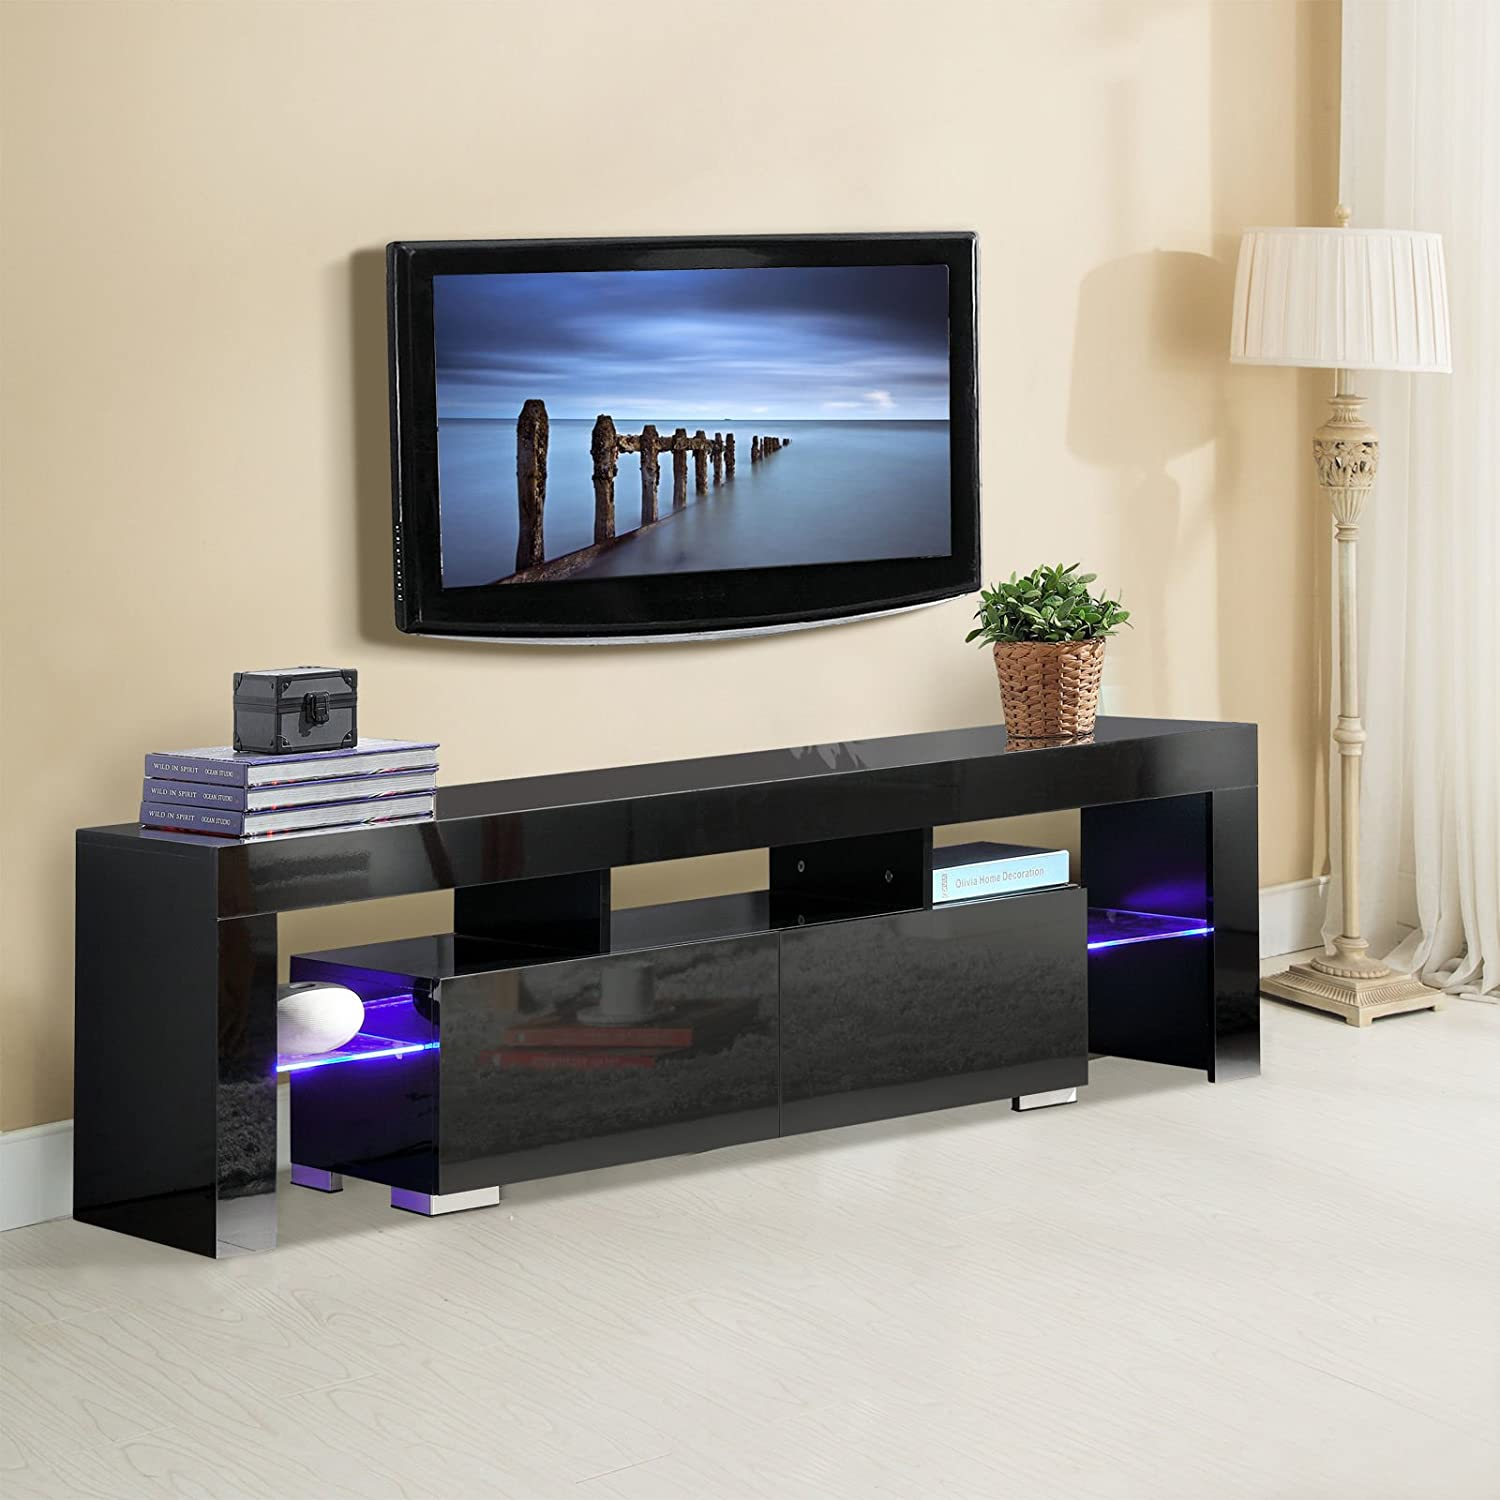 Amazoncom NEW High Gloss Black TV Stand